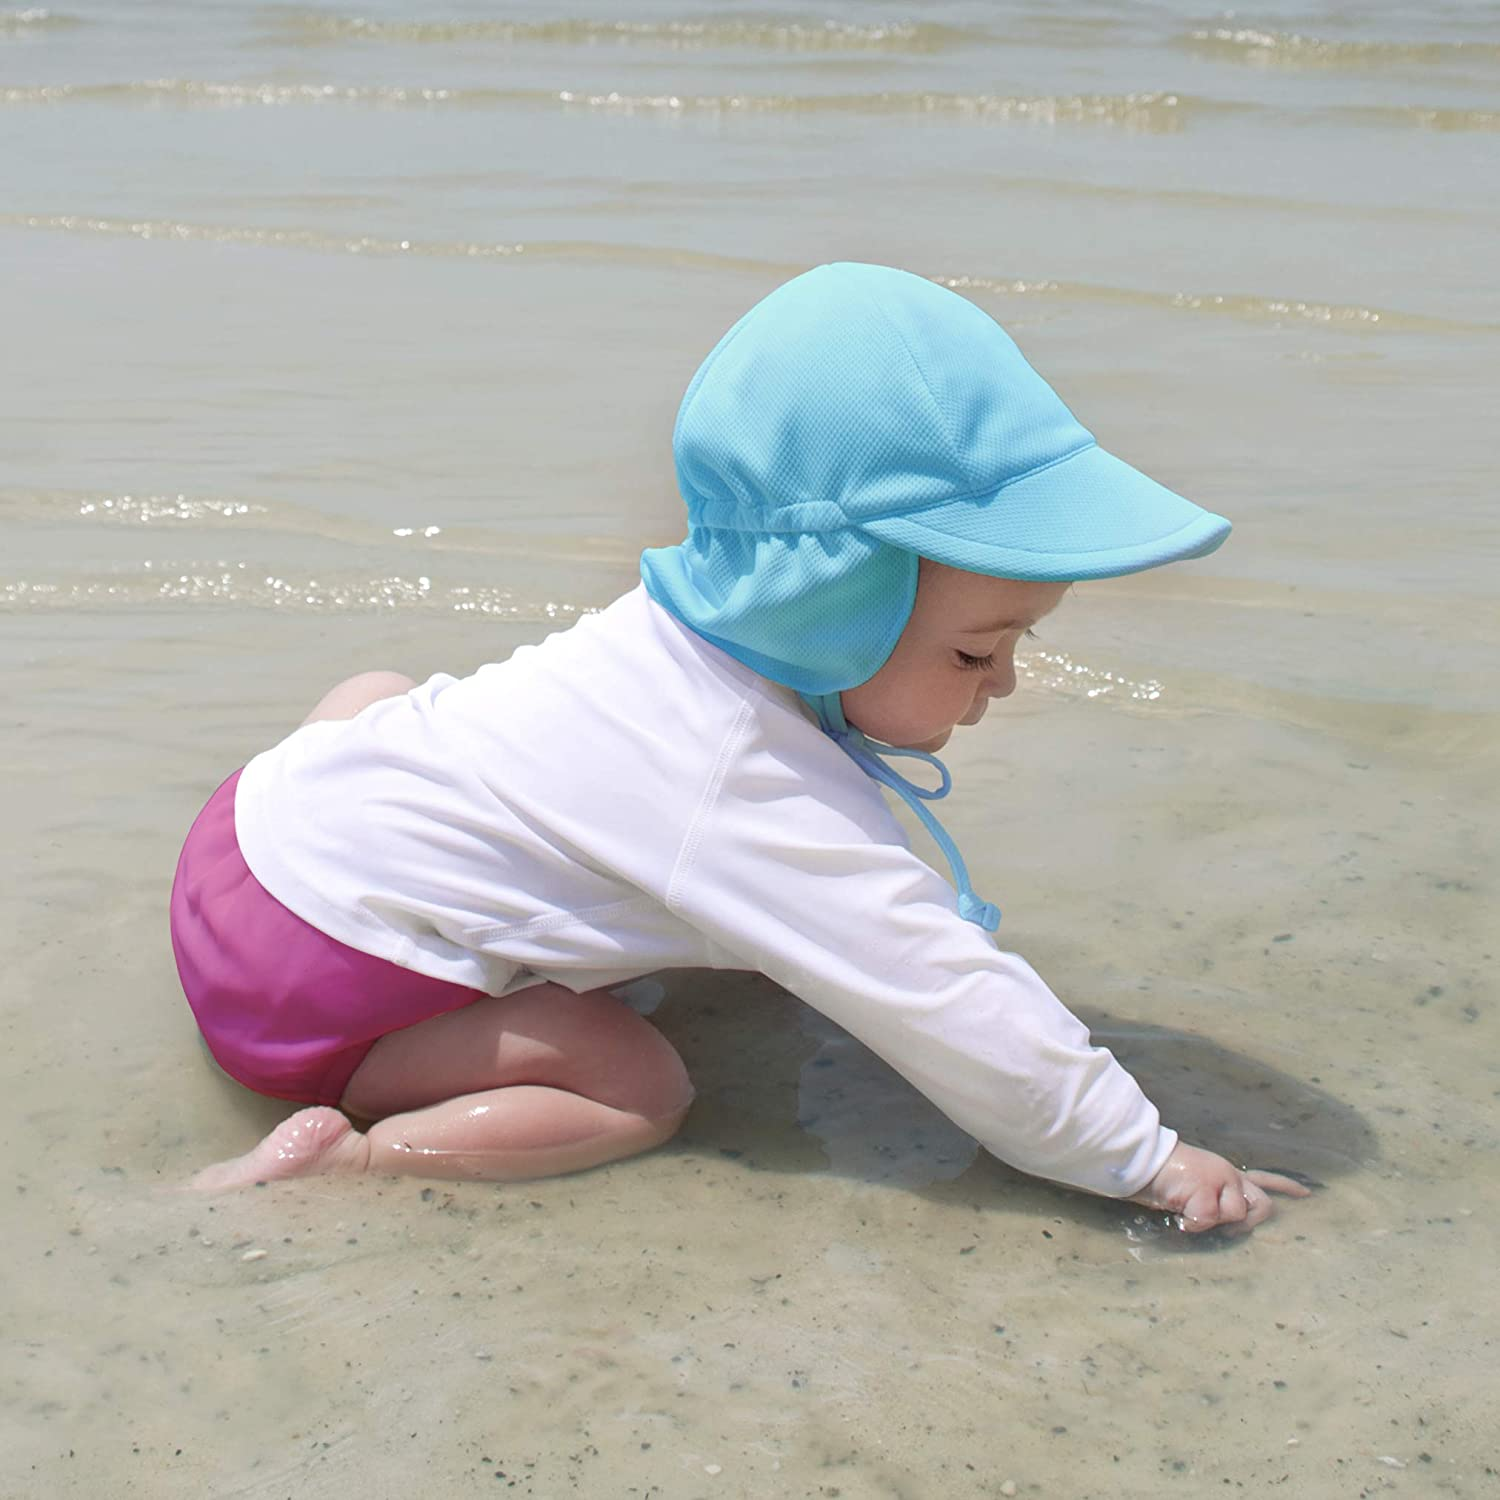 No other diaper necessary Snap Reusable Swim Diaper i play UPF 50+ protection